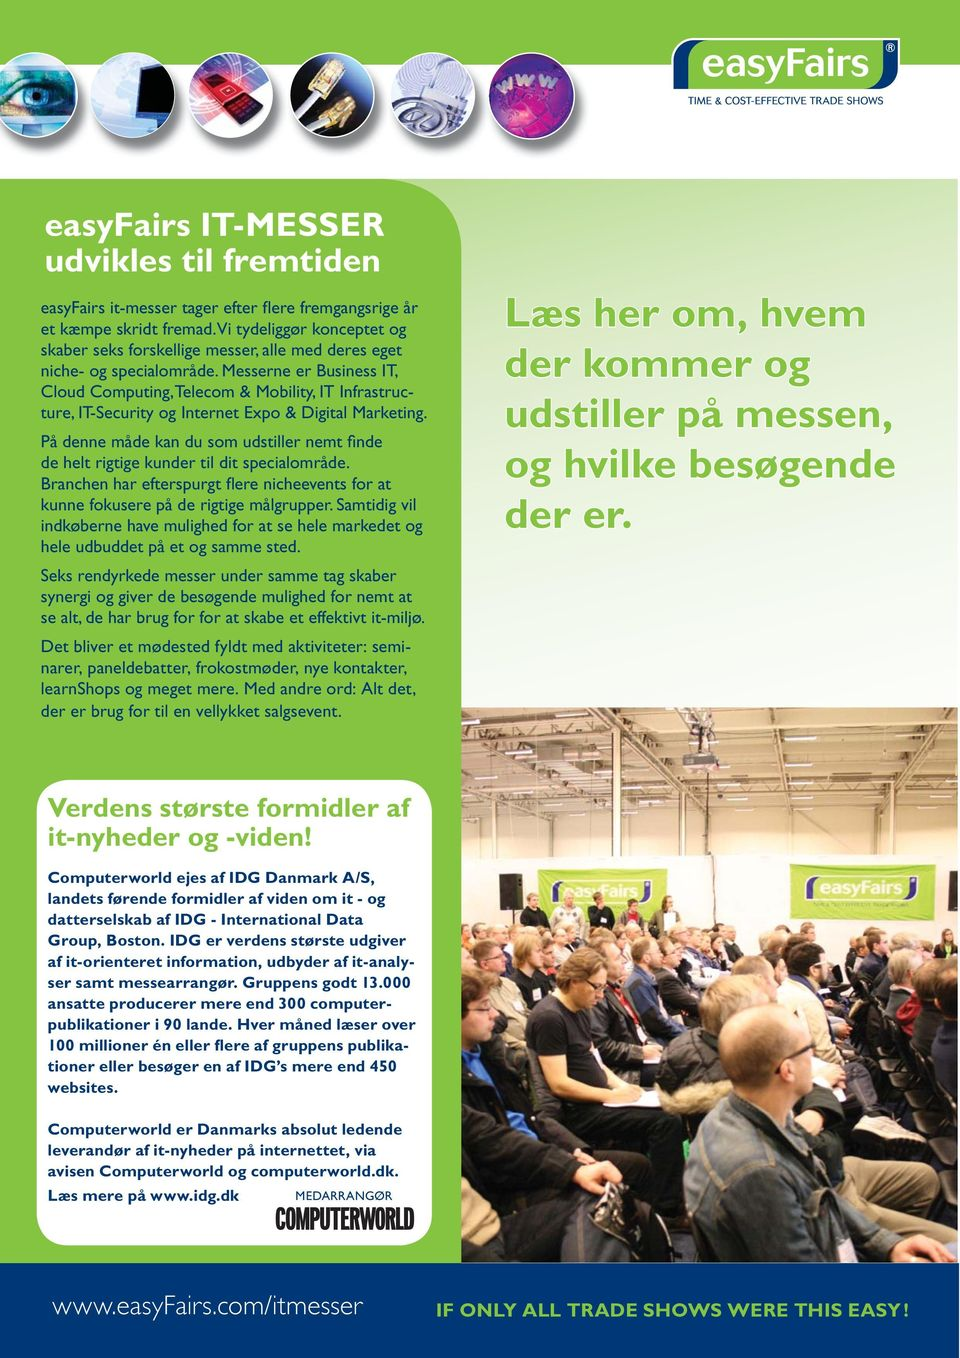 Messerne er Business IT, Cloud Computing, Telecom & Mobility, IT Infrastructure, IT-Security og Internet Expo & Digital Marketing.